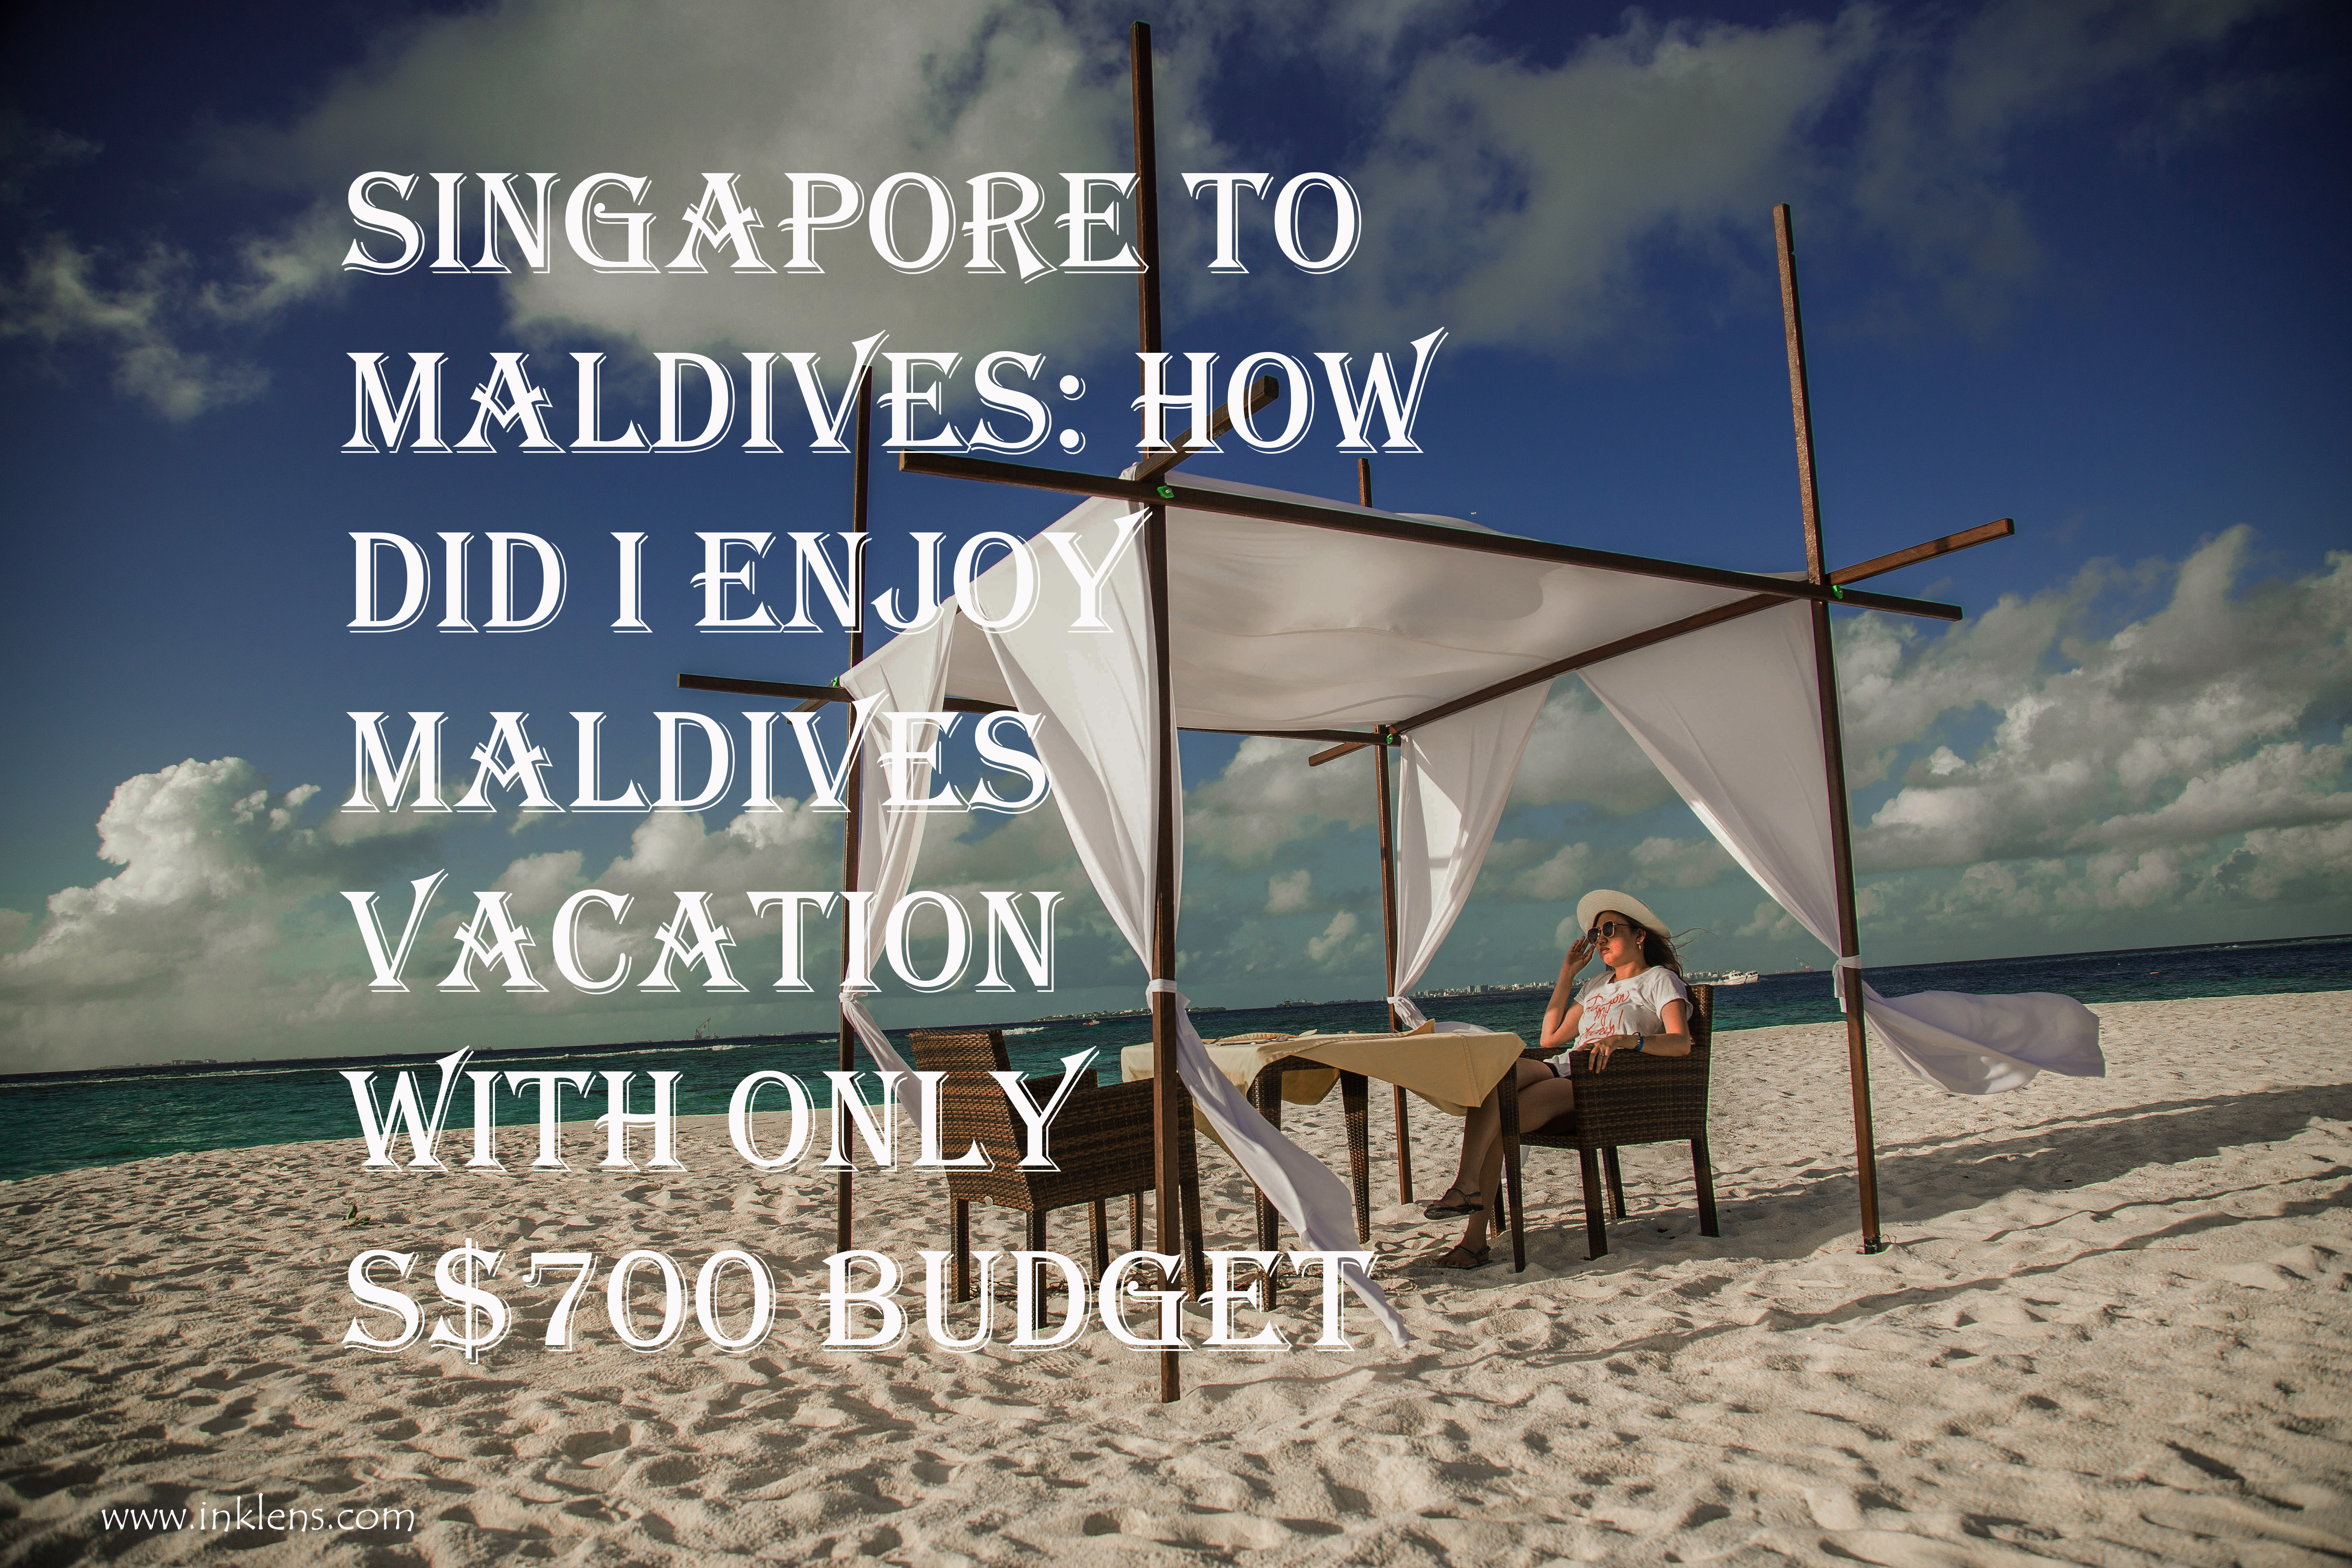 Singapore To Maldives How Did I Enjoy Vacation With Only S 700 Budget